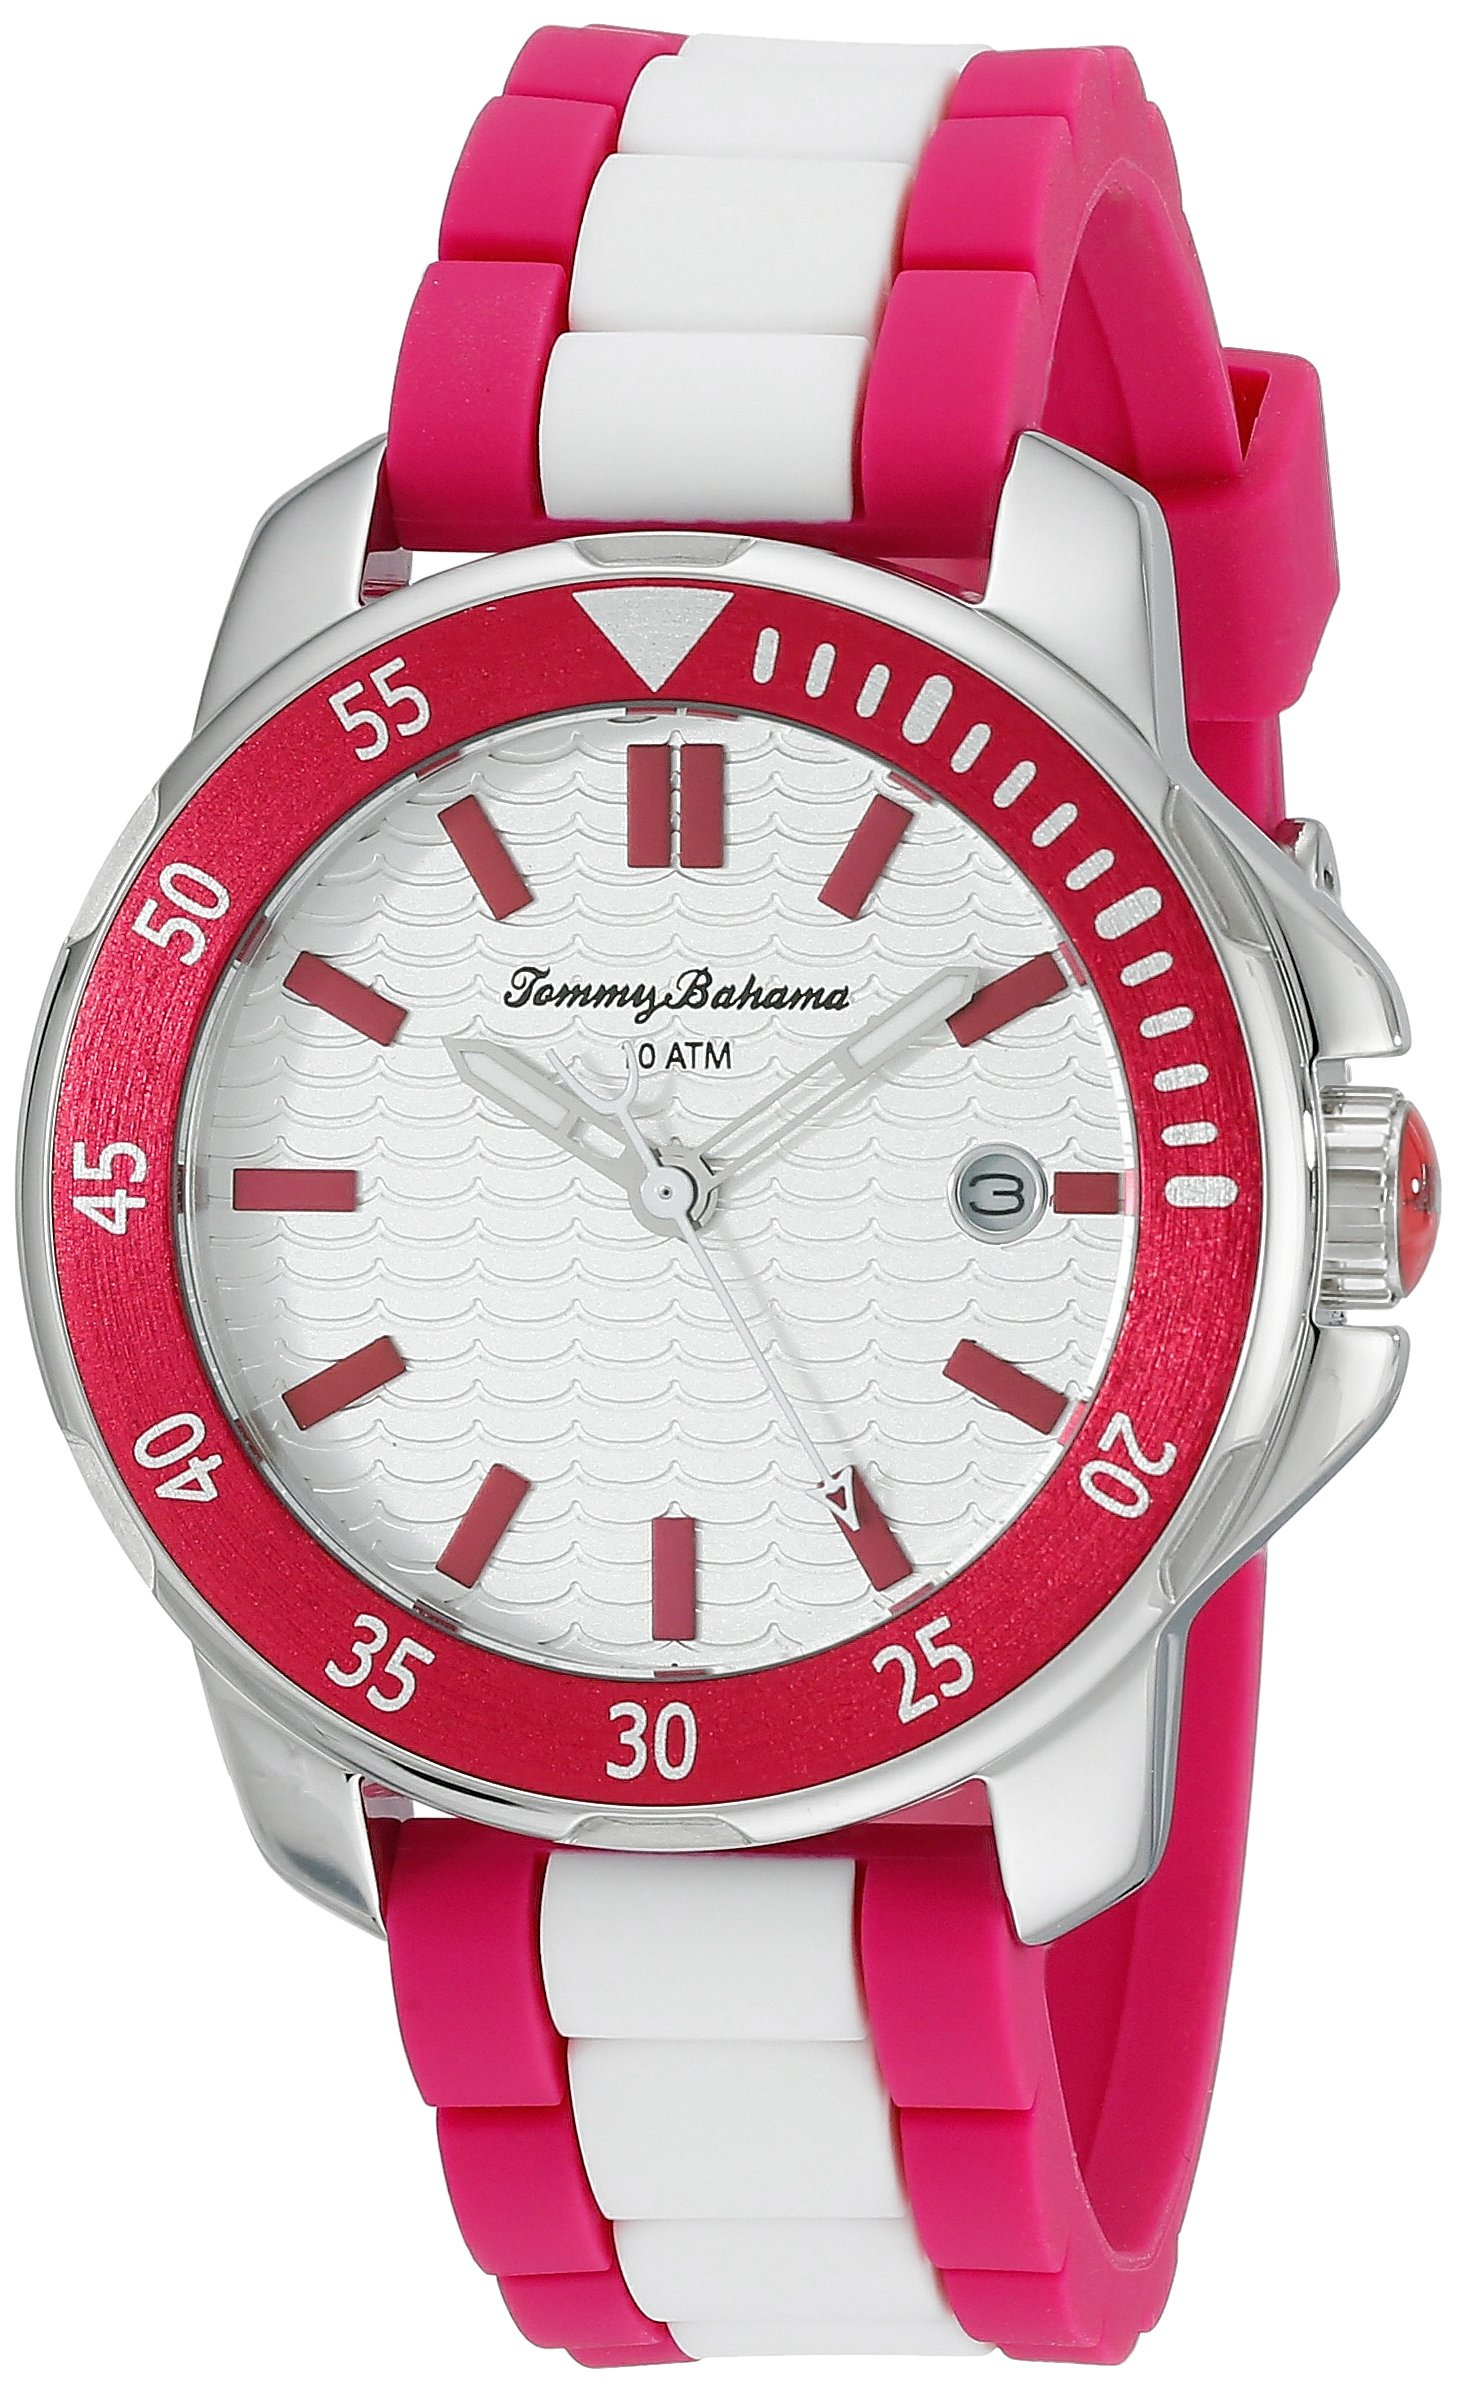 RELAX Women's 10018392 Laguna Two-Tone Stainless Steel Watch